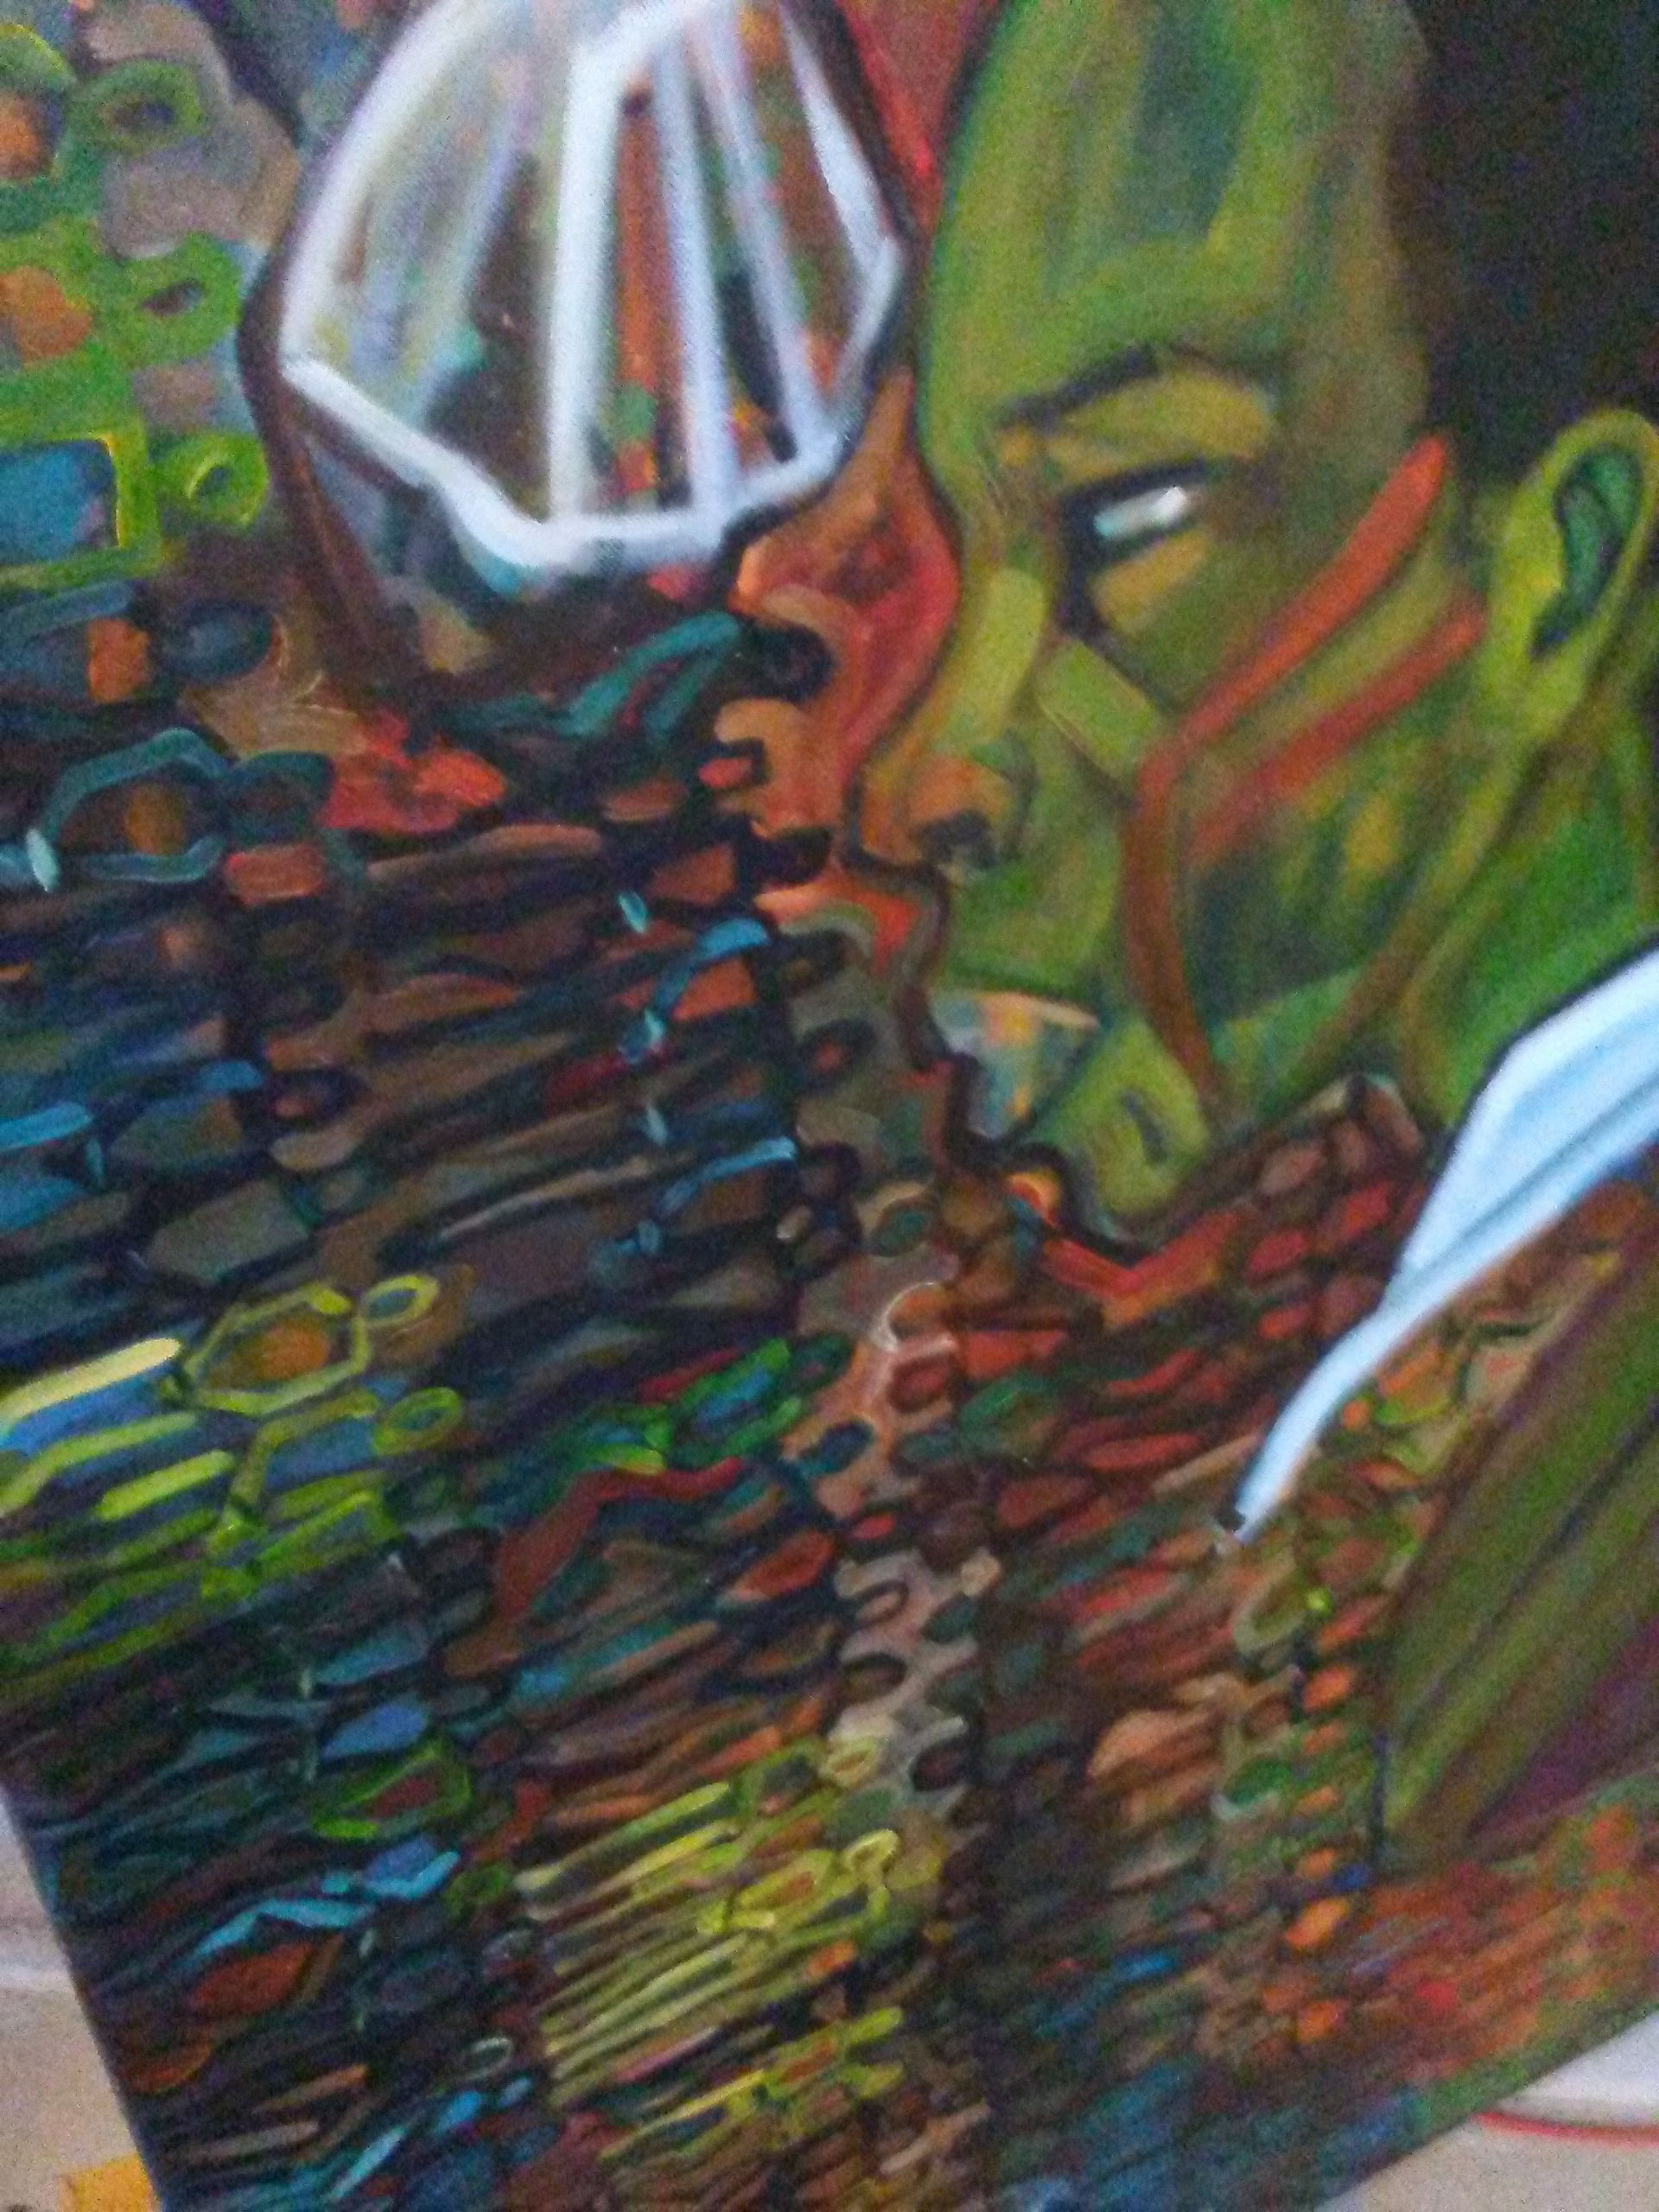 Detail from 2 panel piece